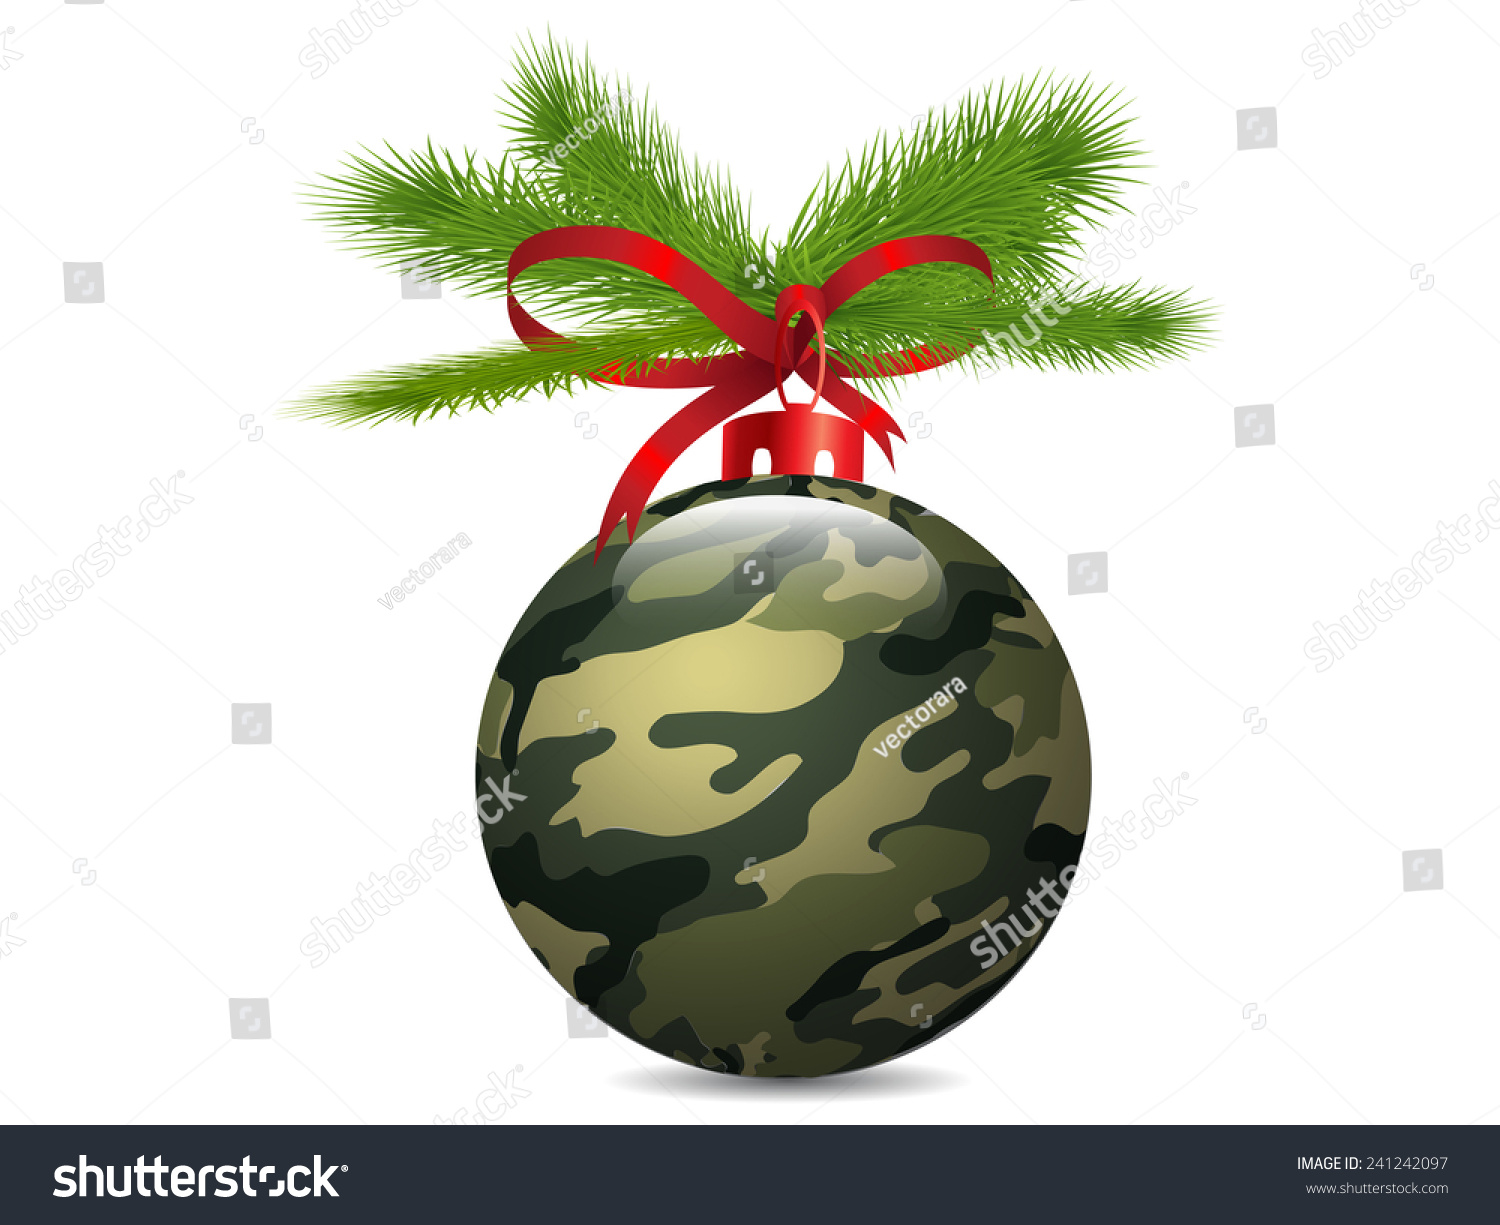 Christmas Camouflage Ball Vector Stock Vector (Royalty Free ...